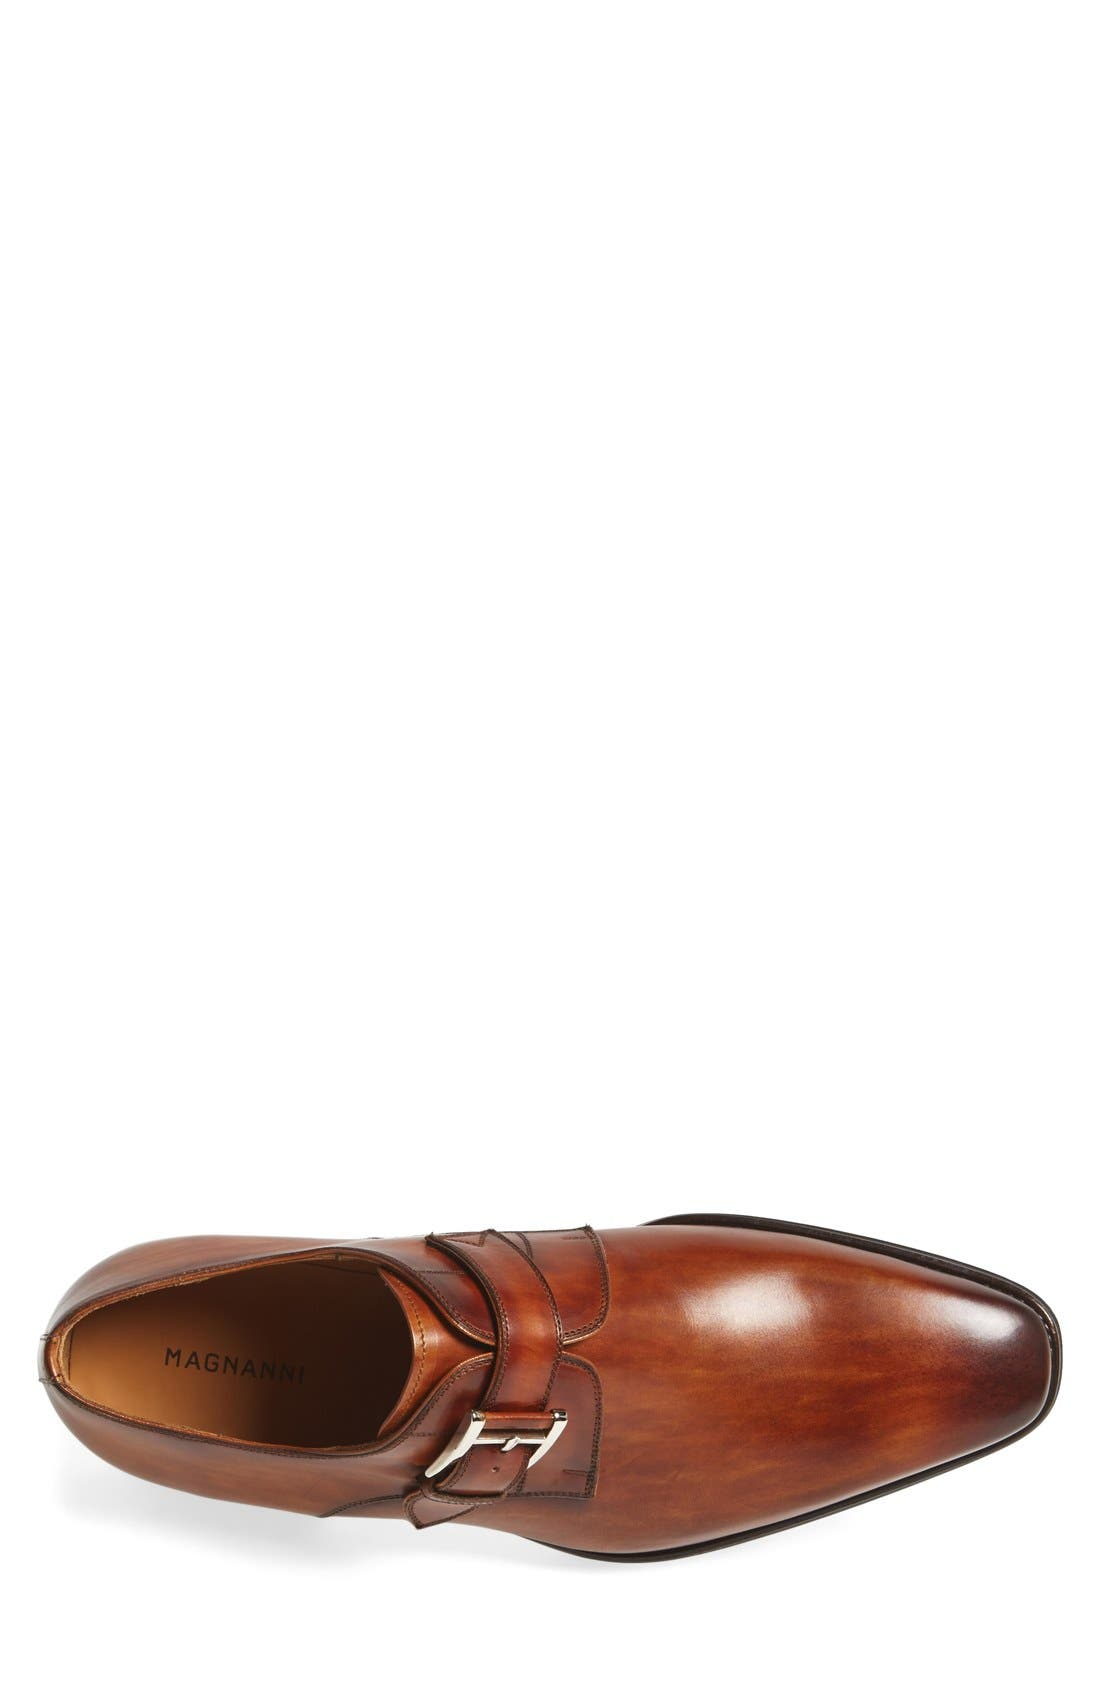 MAGNANNI, Marco Monk Strap Loafer, Alternate thumbnail 4, color, CUERO BROWN LEATHER